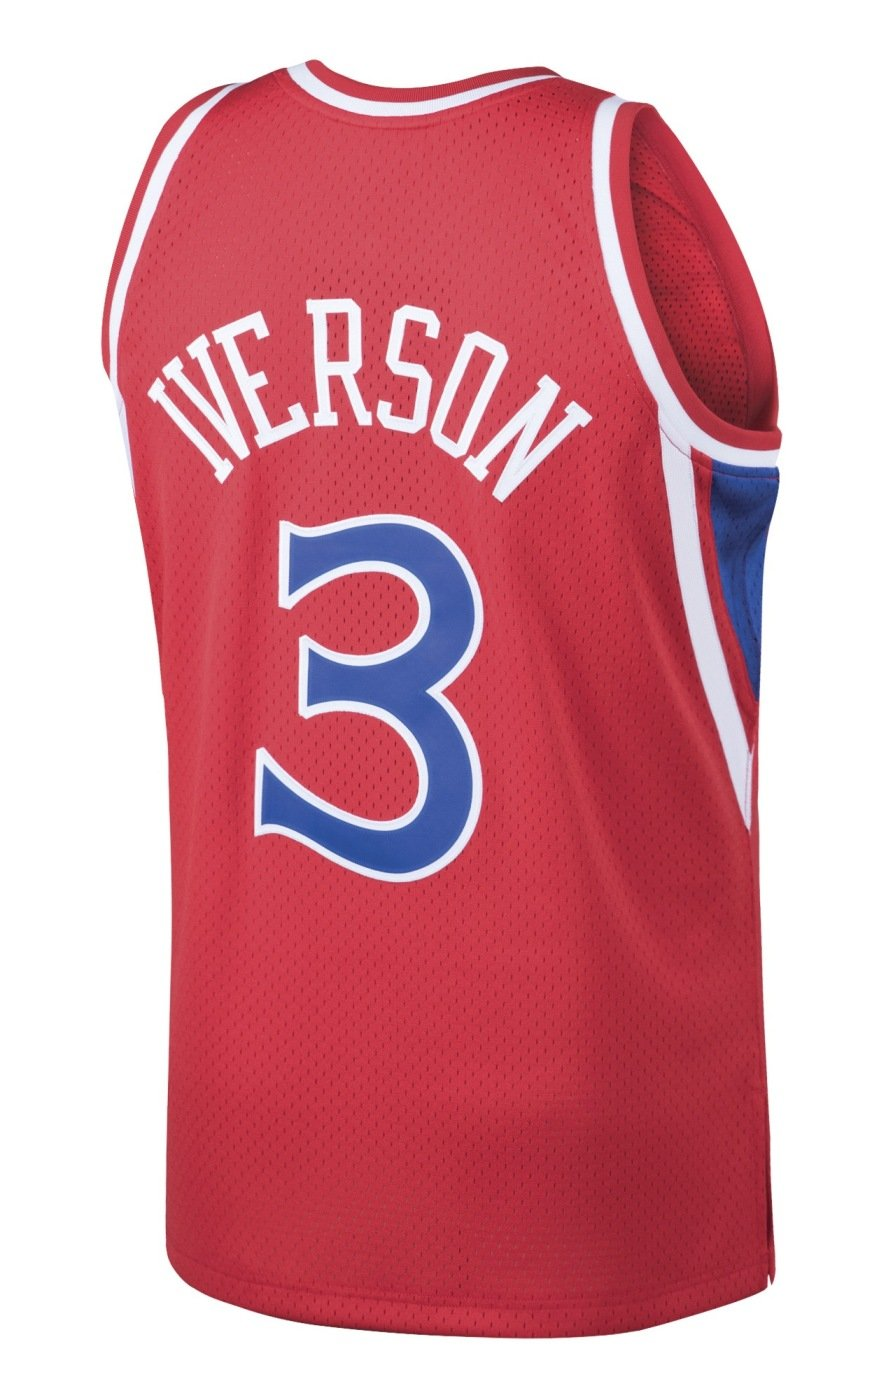 f48431d8 Amazon.com : Mitchell & Ness Allen Iverson Philadelphia 76ers NBA Throwback  Jersey - Red : Clothing